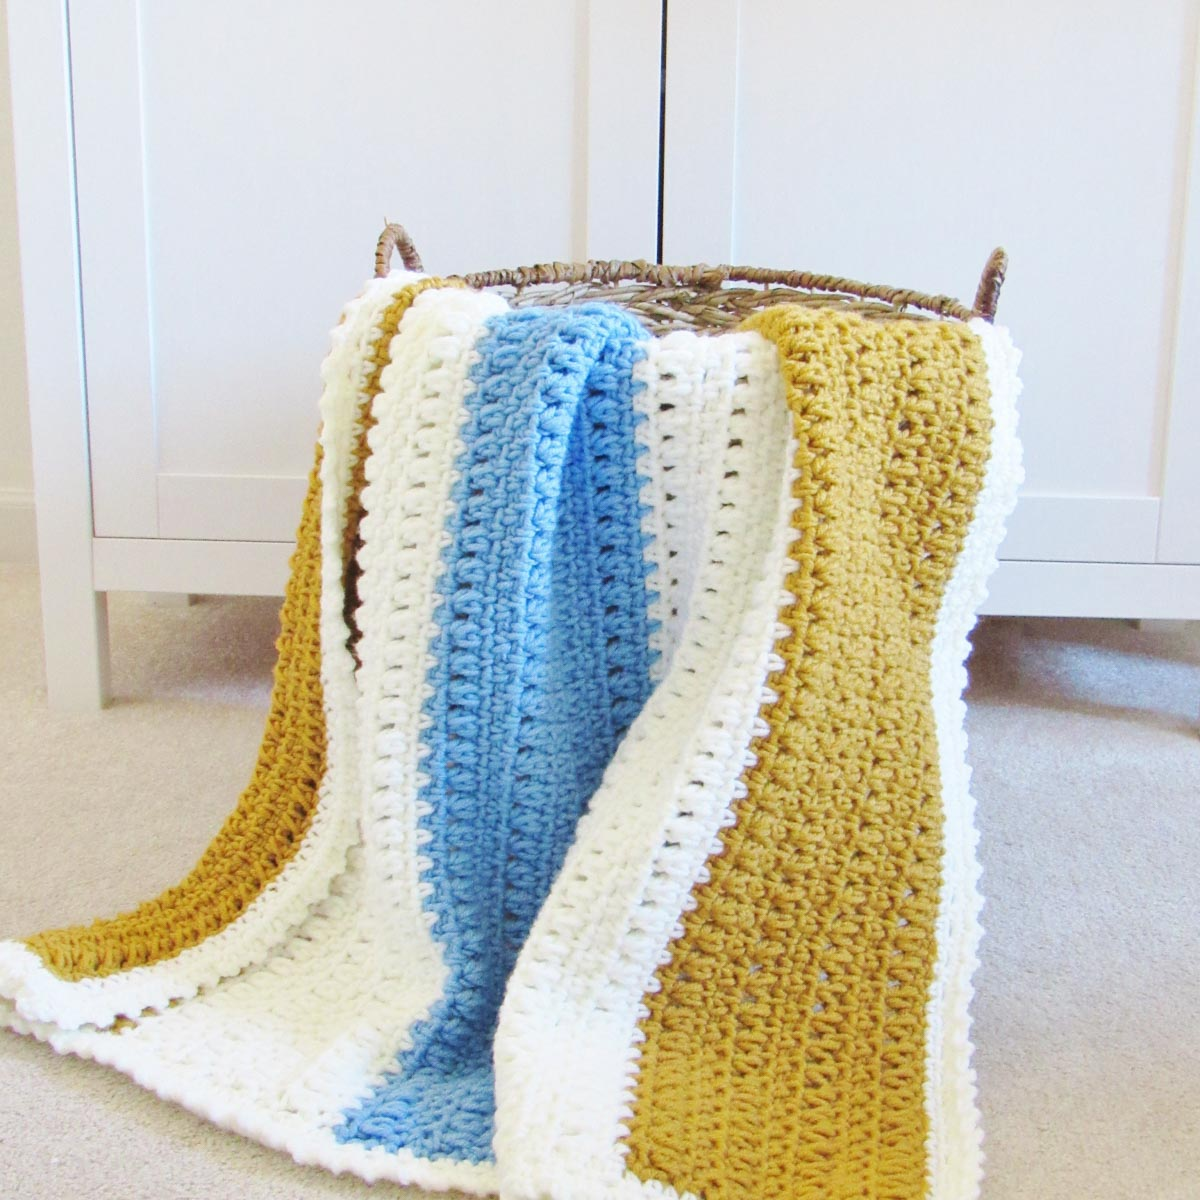 Easy crochet blanket for beginners laying on the side of a brown whicker basket. The blanket has wide stripes of white, gold and light blue.